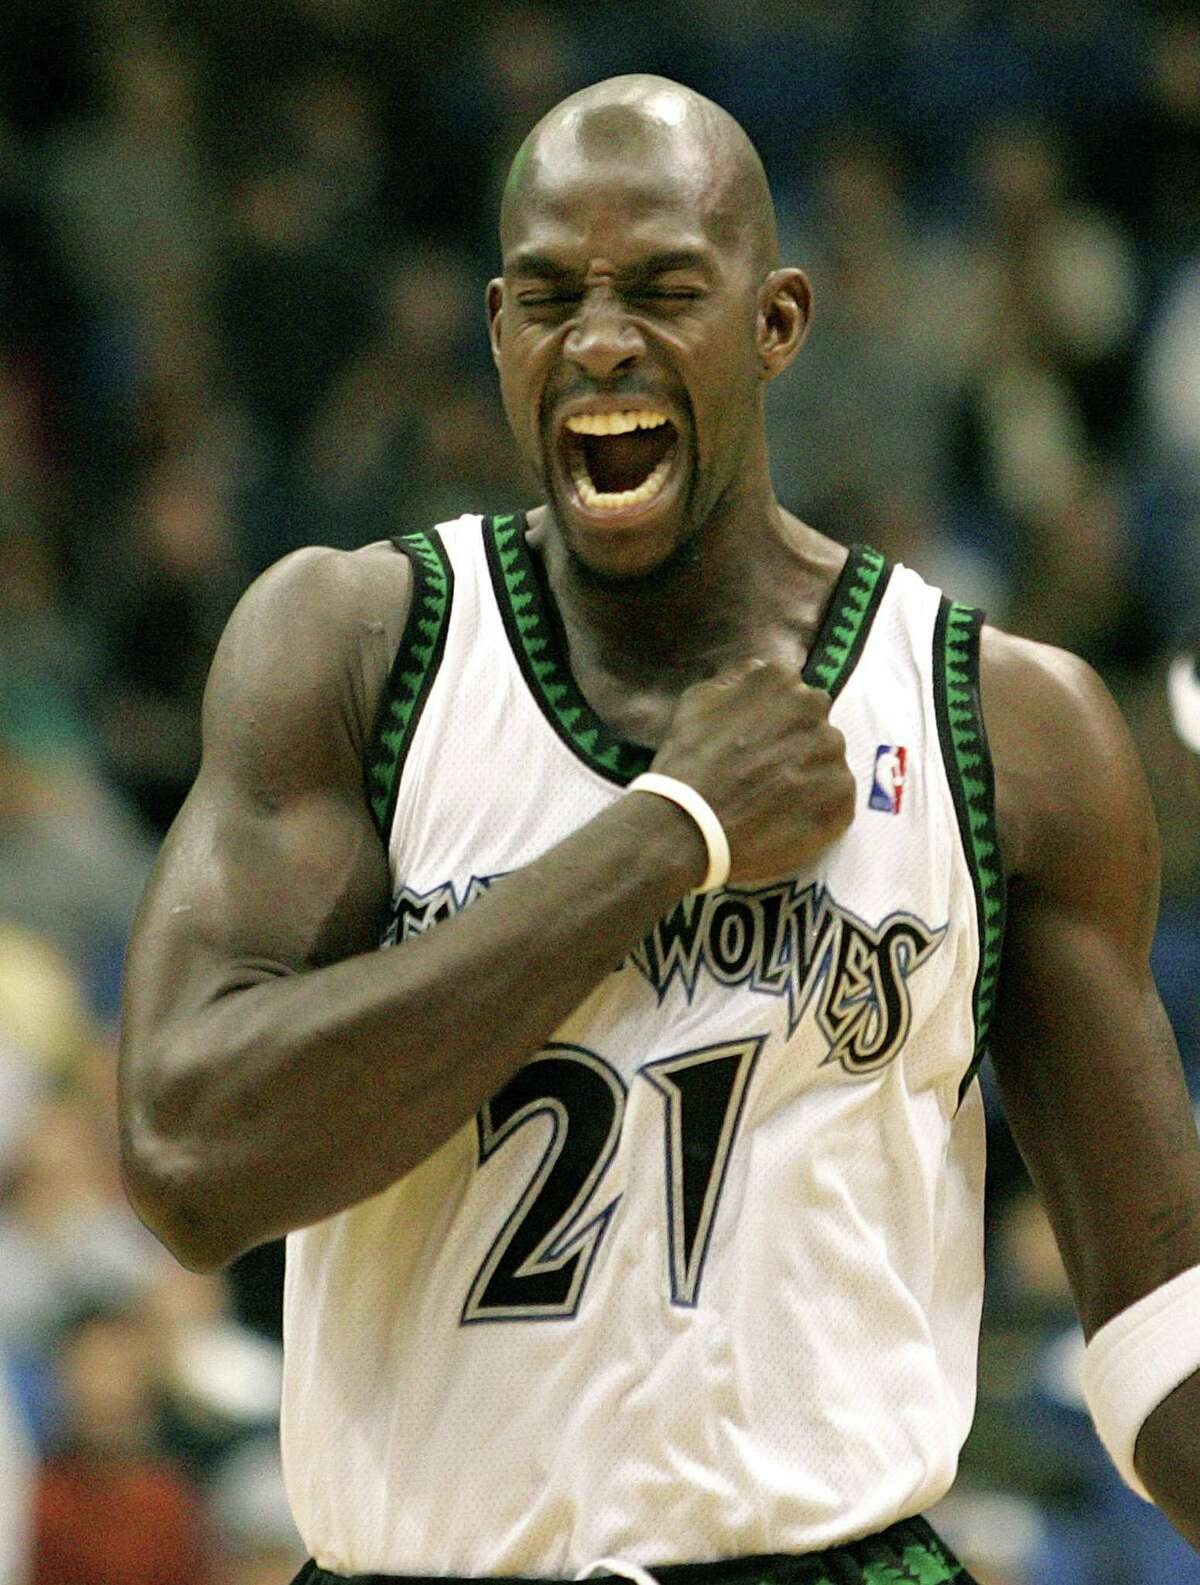 The Minnesota Timberwolves are sending forward Thaddeus Young to the Brooklyn Nets for Kevin Garnett.